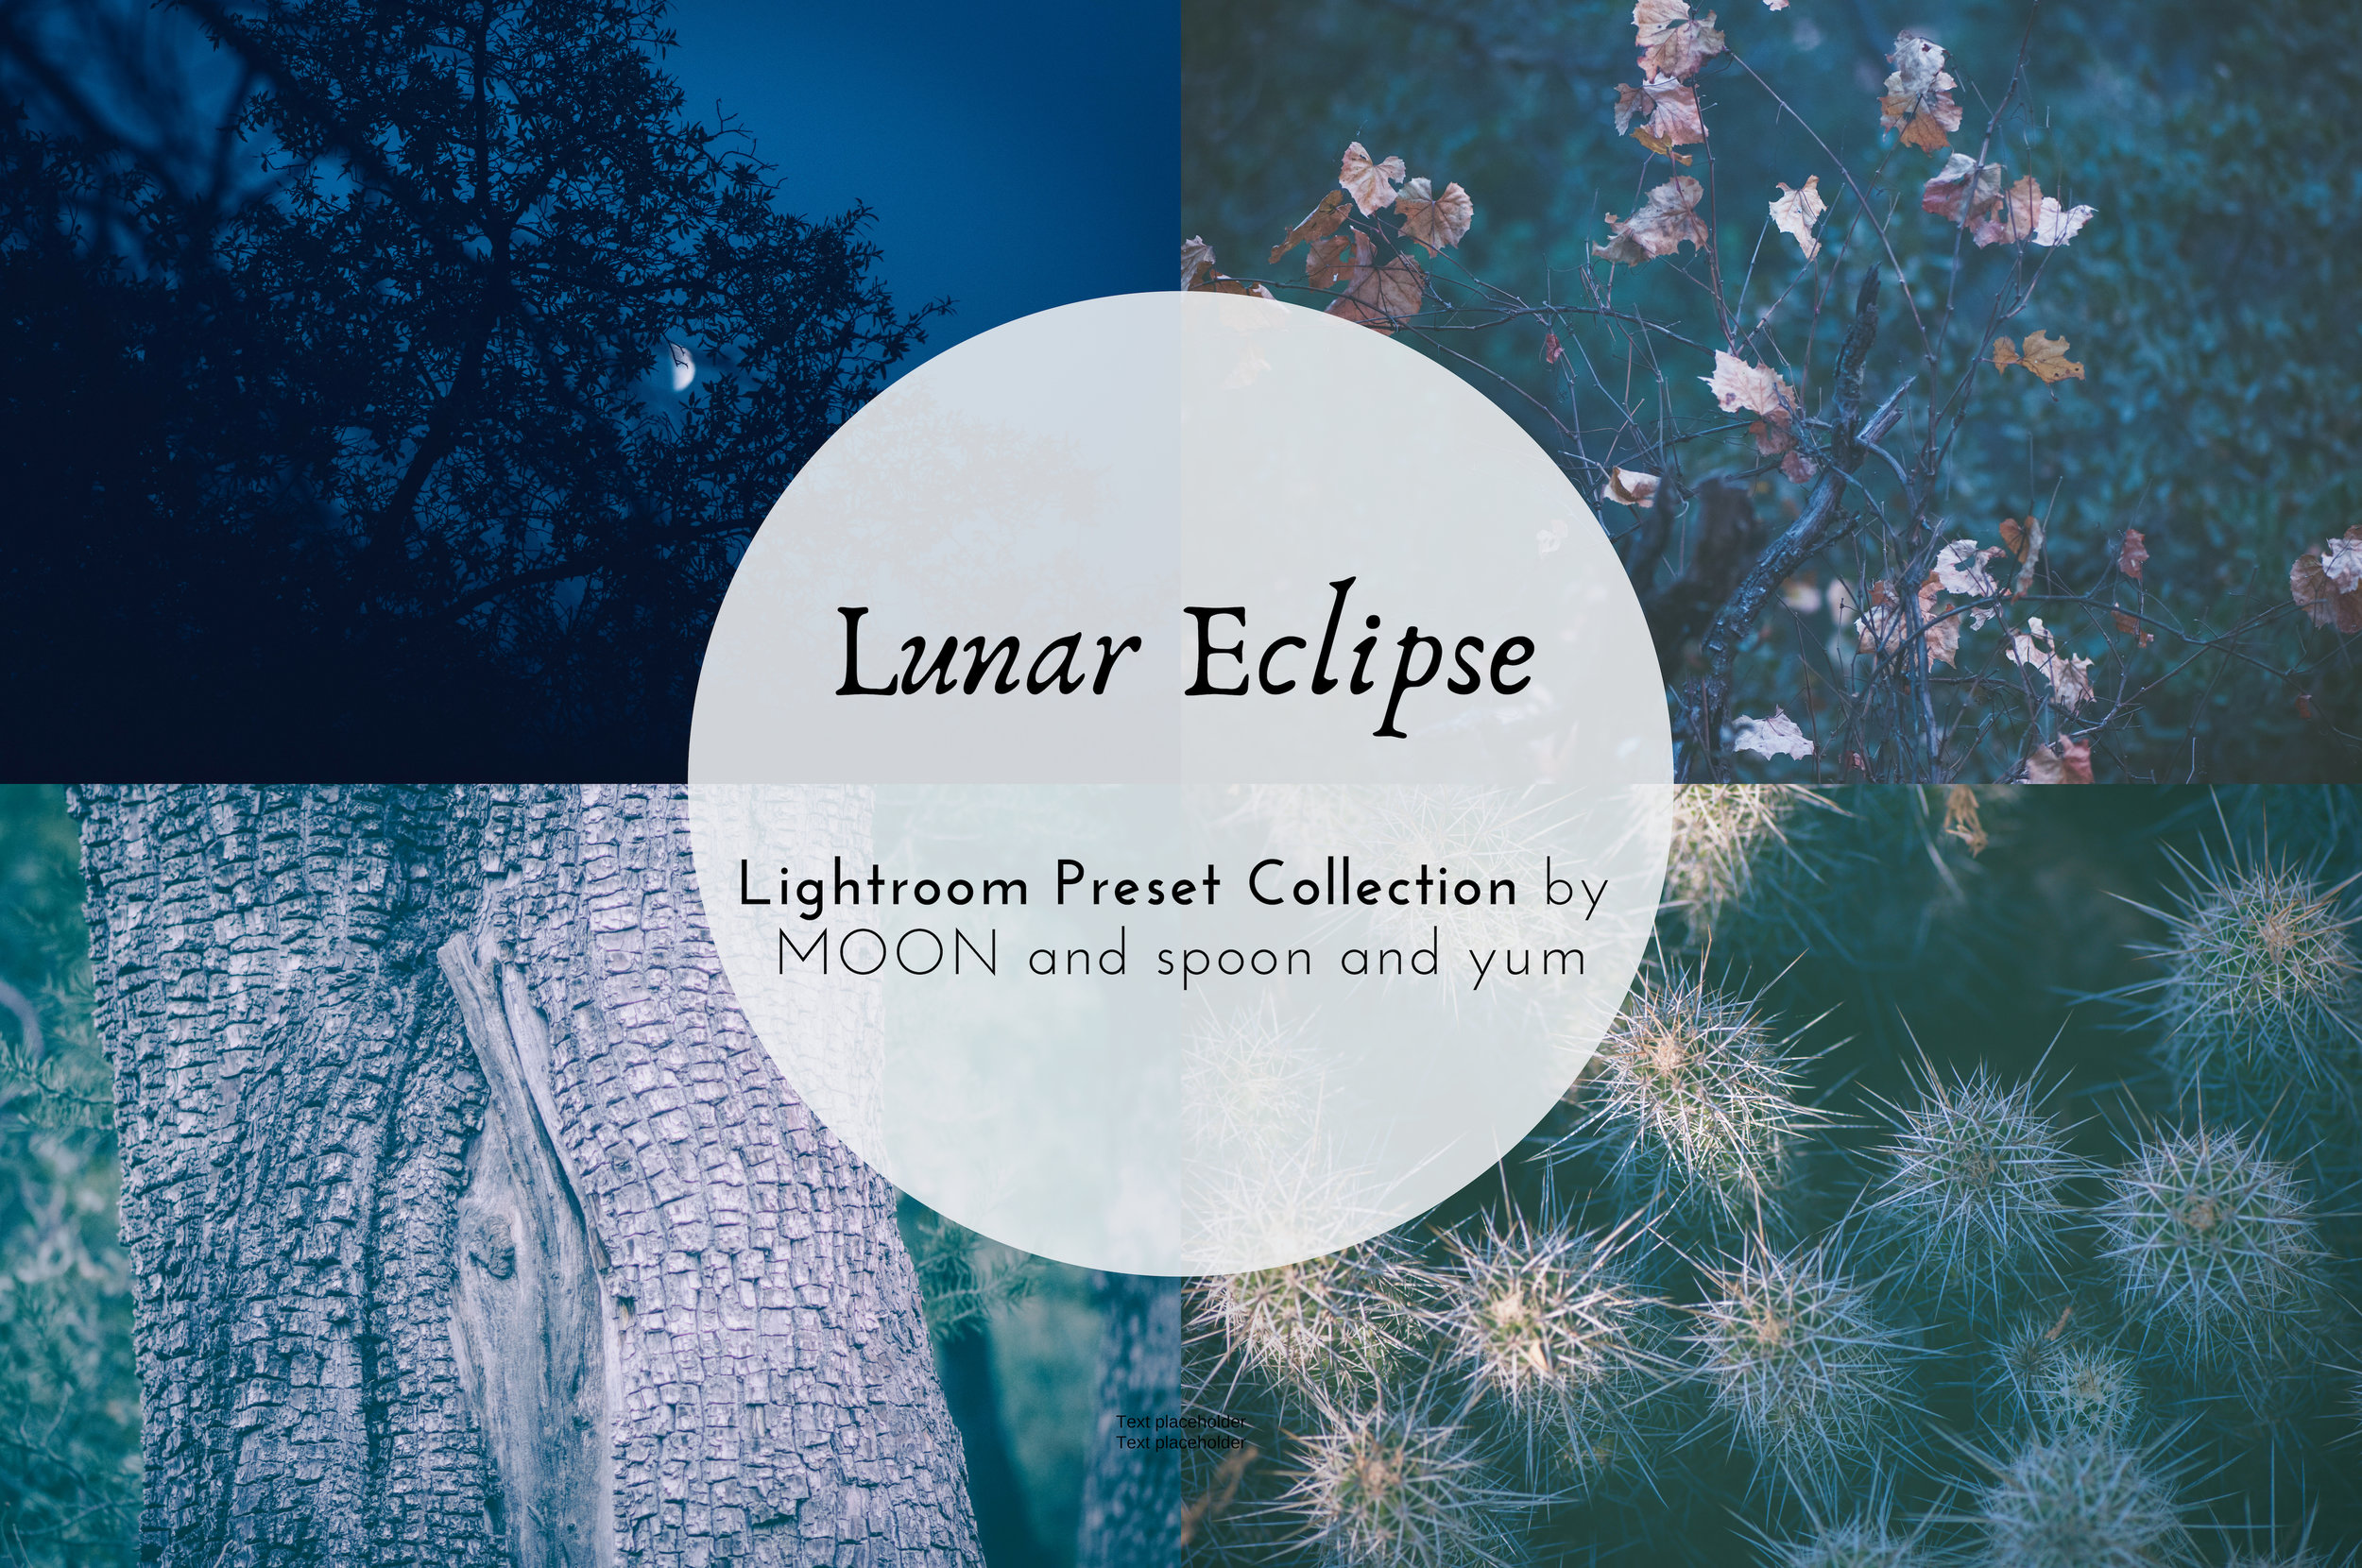 This Lunar Eclipse Adobe Lightroom Presets Collection is inspired by my favorite medium format films and digital VSCO filters. They work beautifully for nature, landscape, travel and food photos alike. Matte, moody, mystical, magical, faded, vintage, cool-toned, subtle and ethereal are some of the words I would use to describe this versatile and genuinely fun collection. Happy editing! #lightroompresets #filmpresets #vscopresets #mattepresets #moodypresets #vscofilmfilters